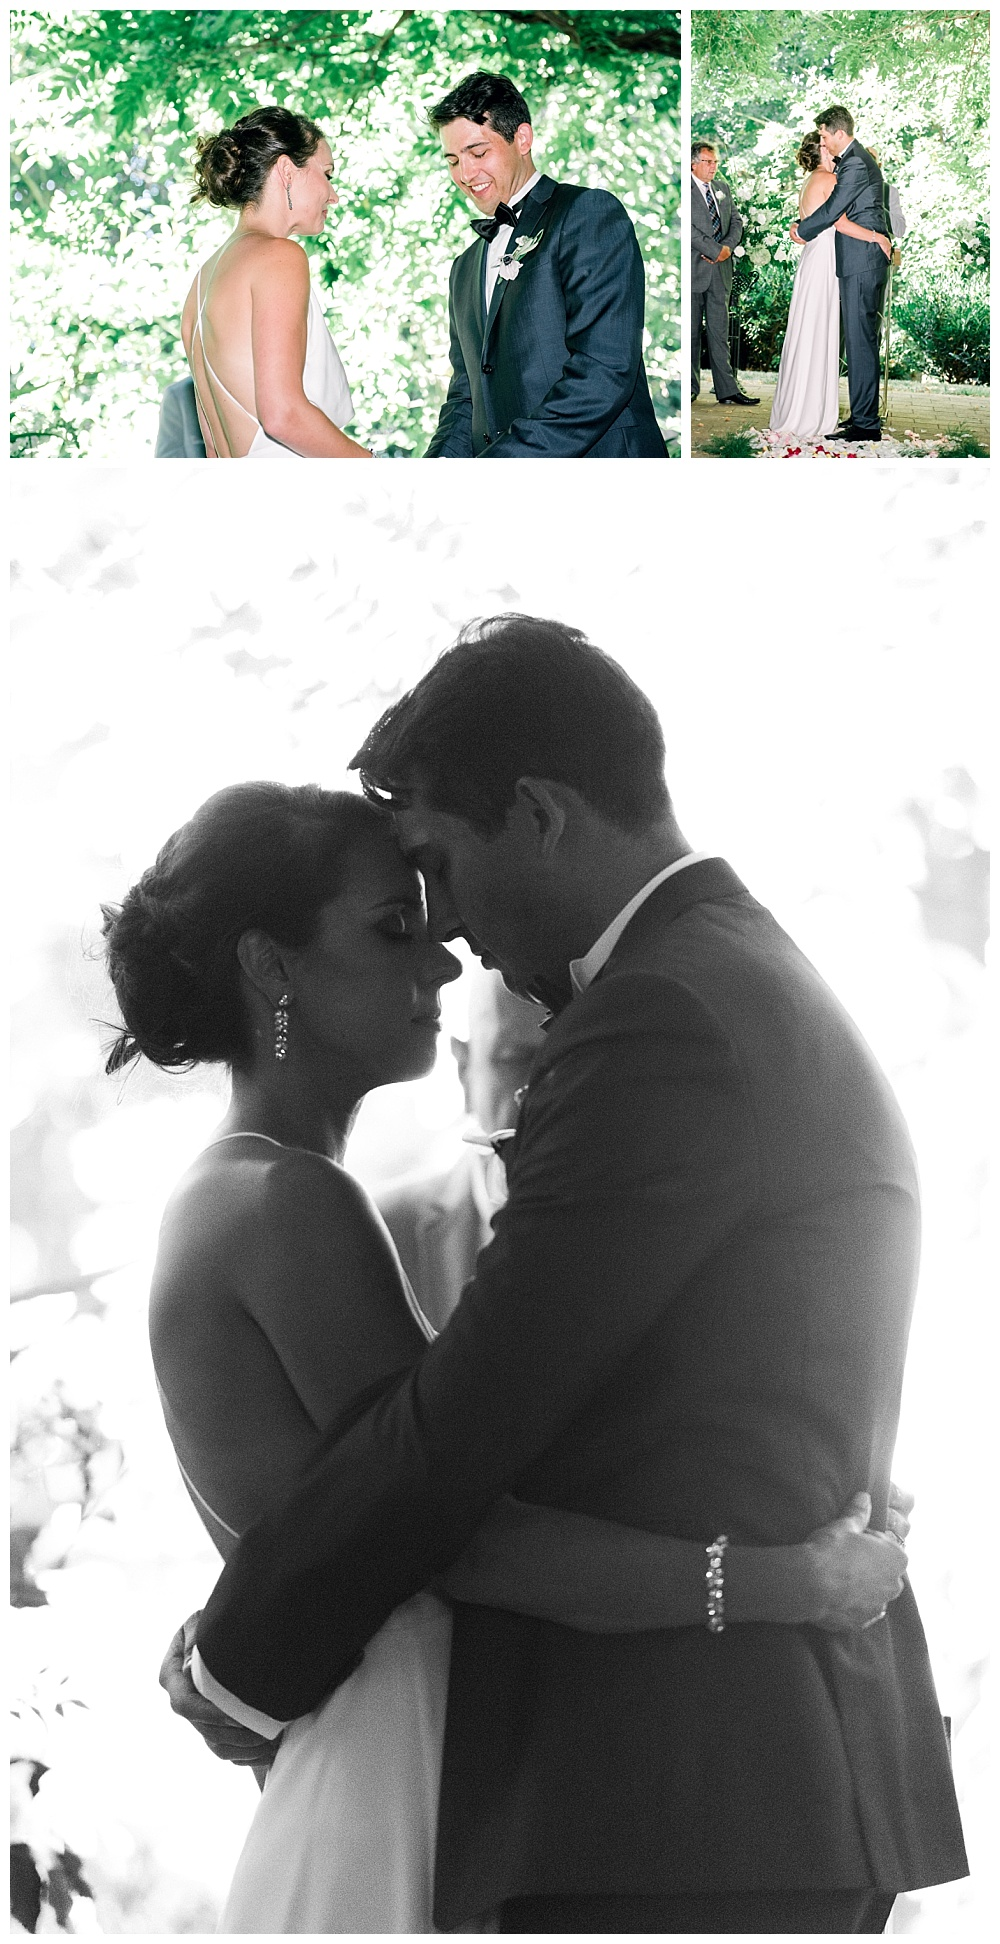 romantic and intimate moment between bride and groom at altar, silhouetted against the background